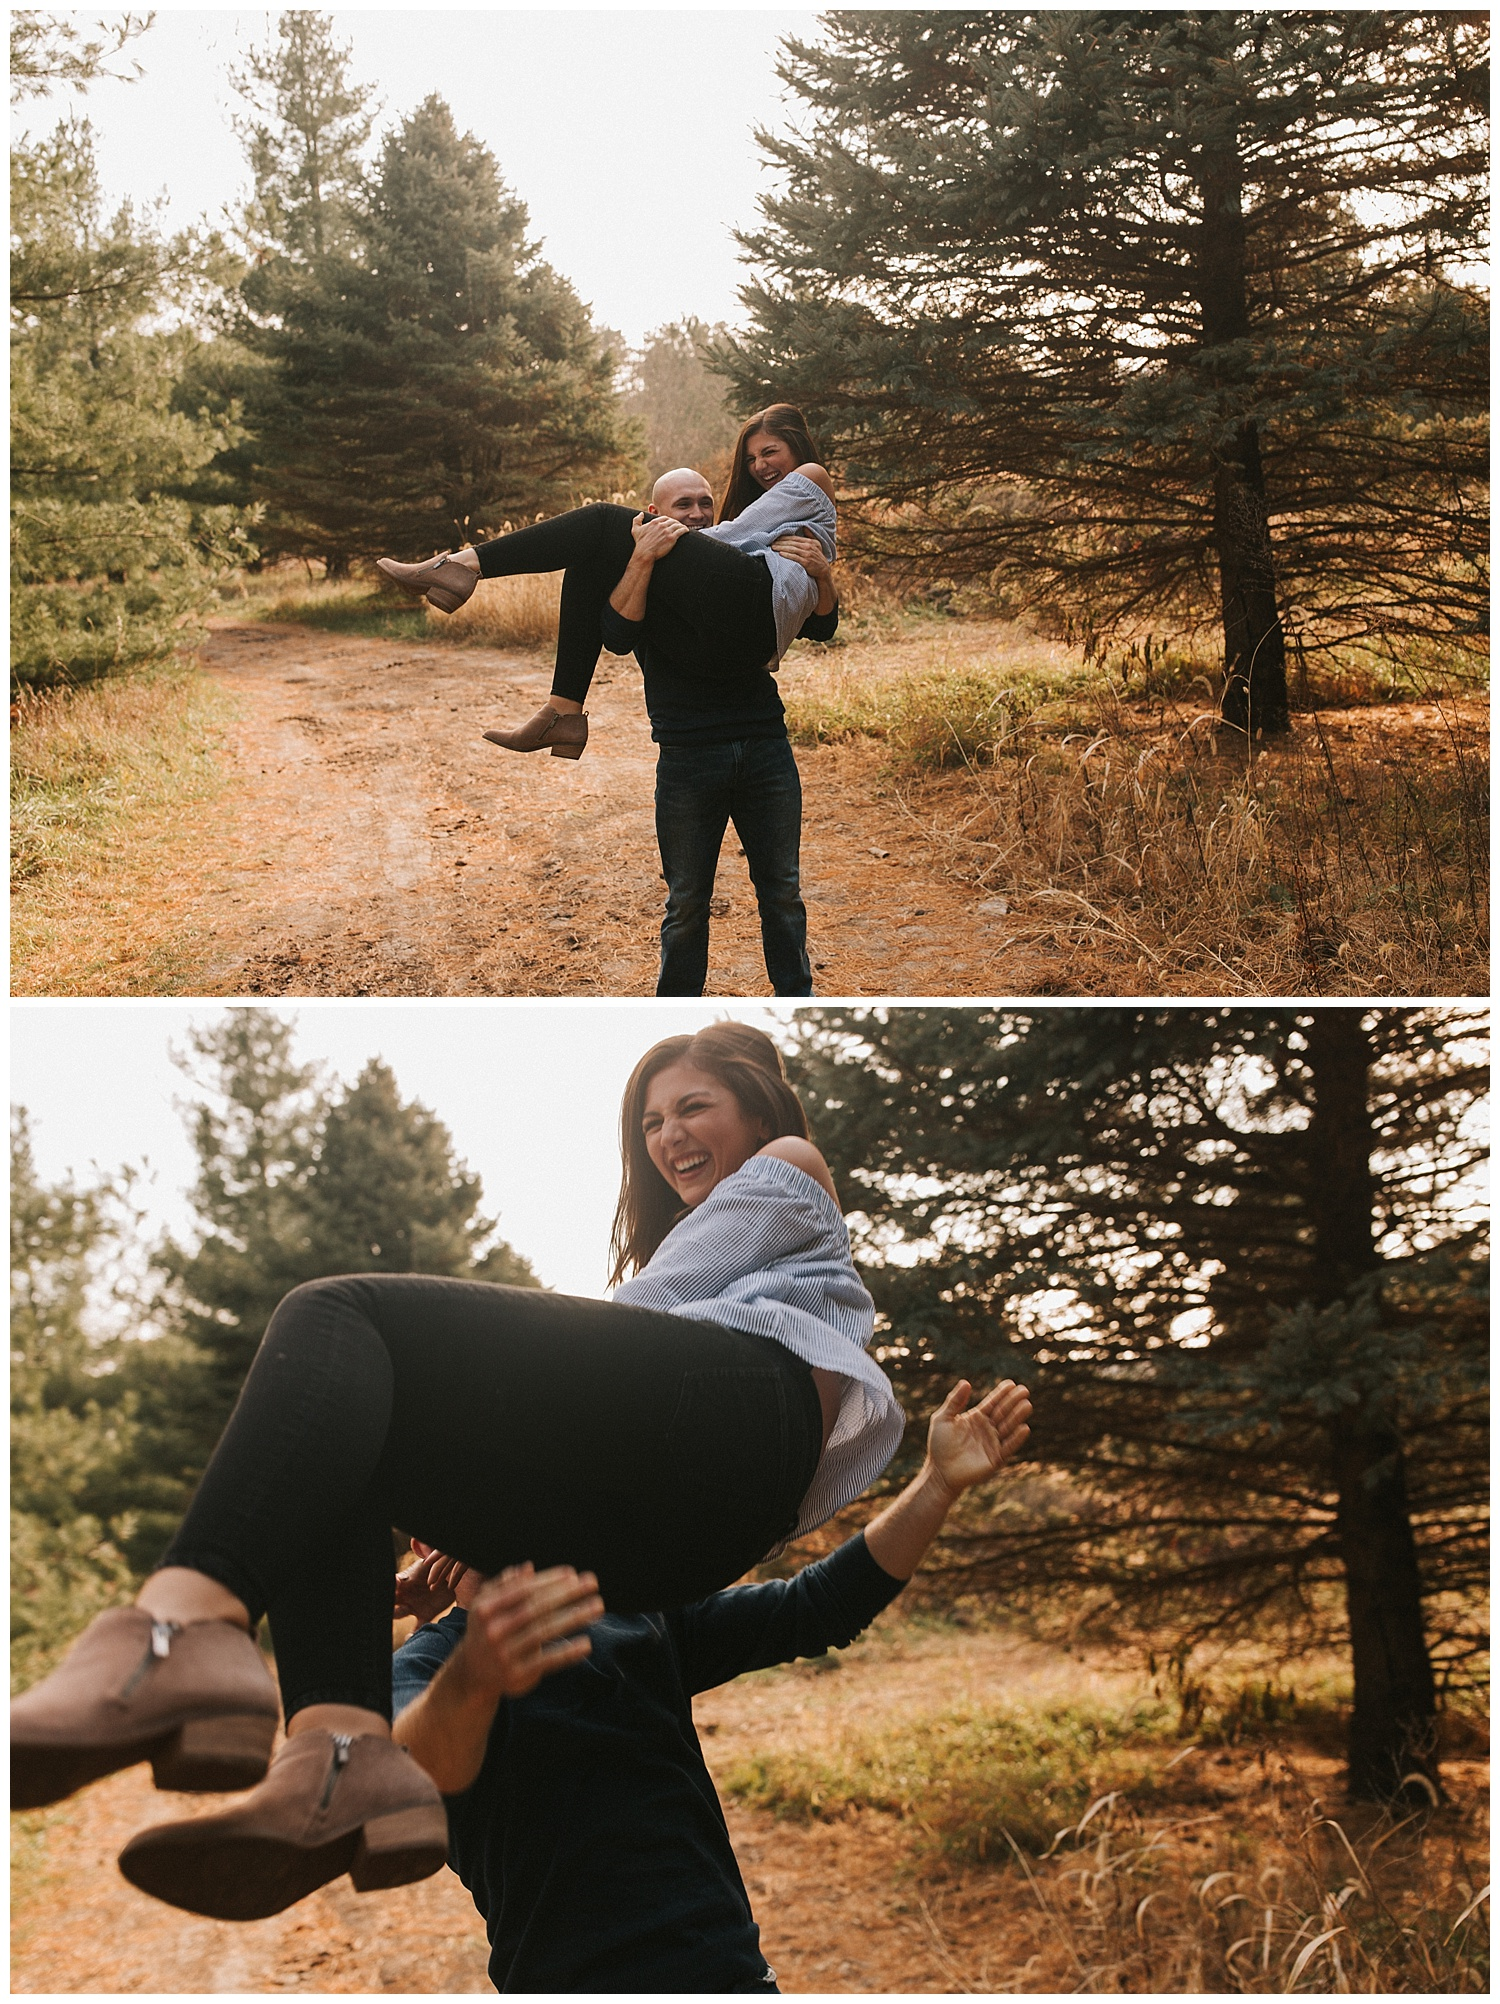 midwest_adventurous_engagement_session_traveling_photographer_0009.jpg